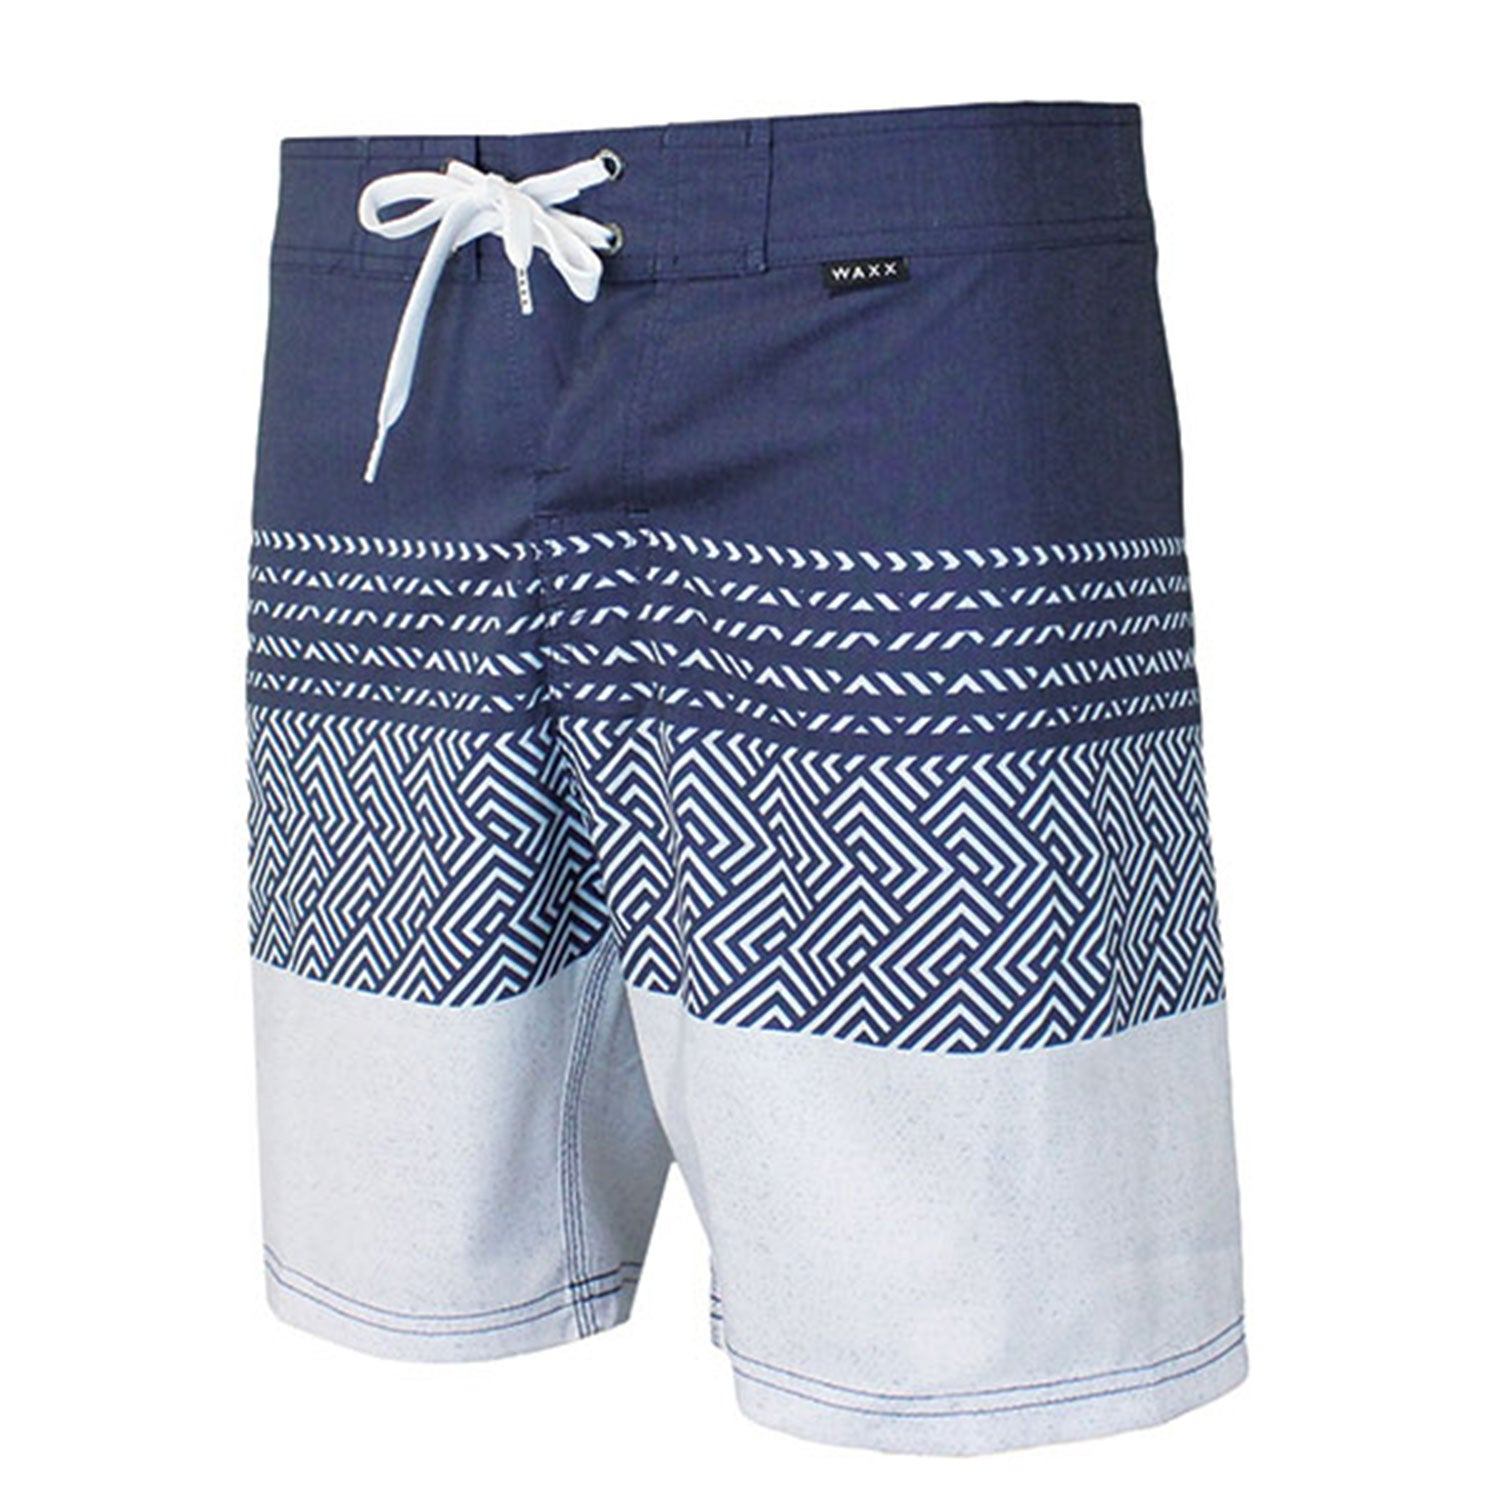 Waxx Lounger Dayton Men's Board Short